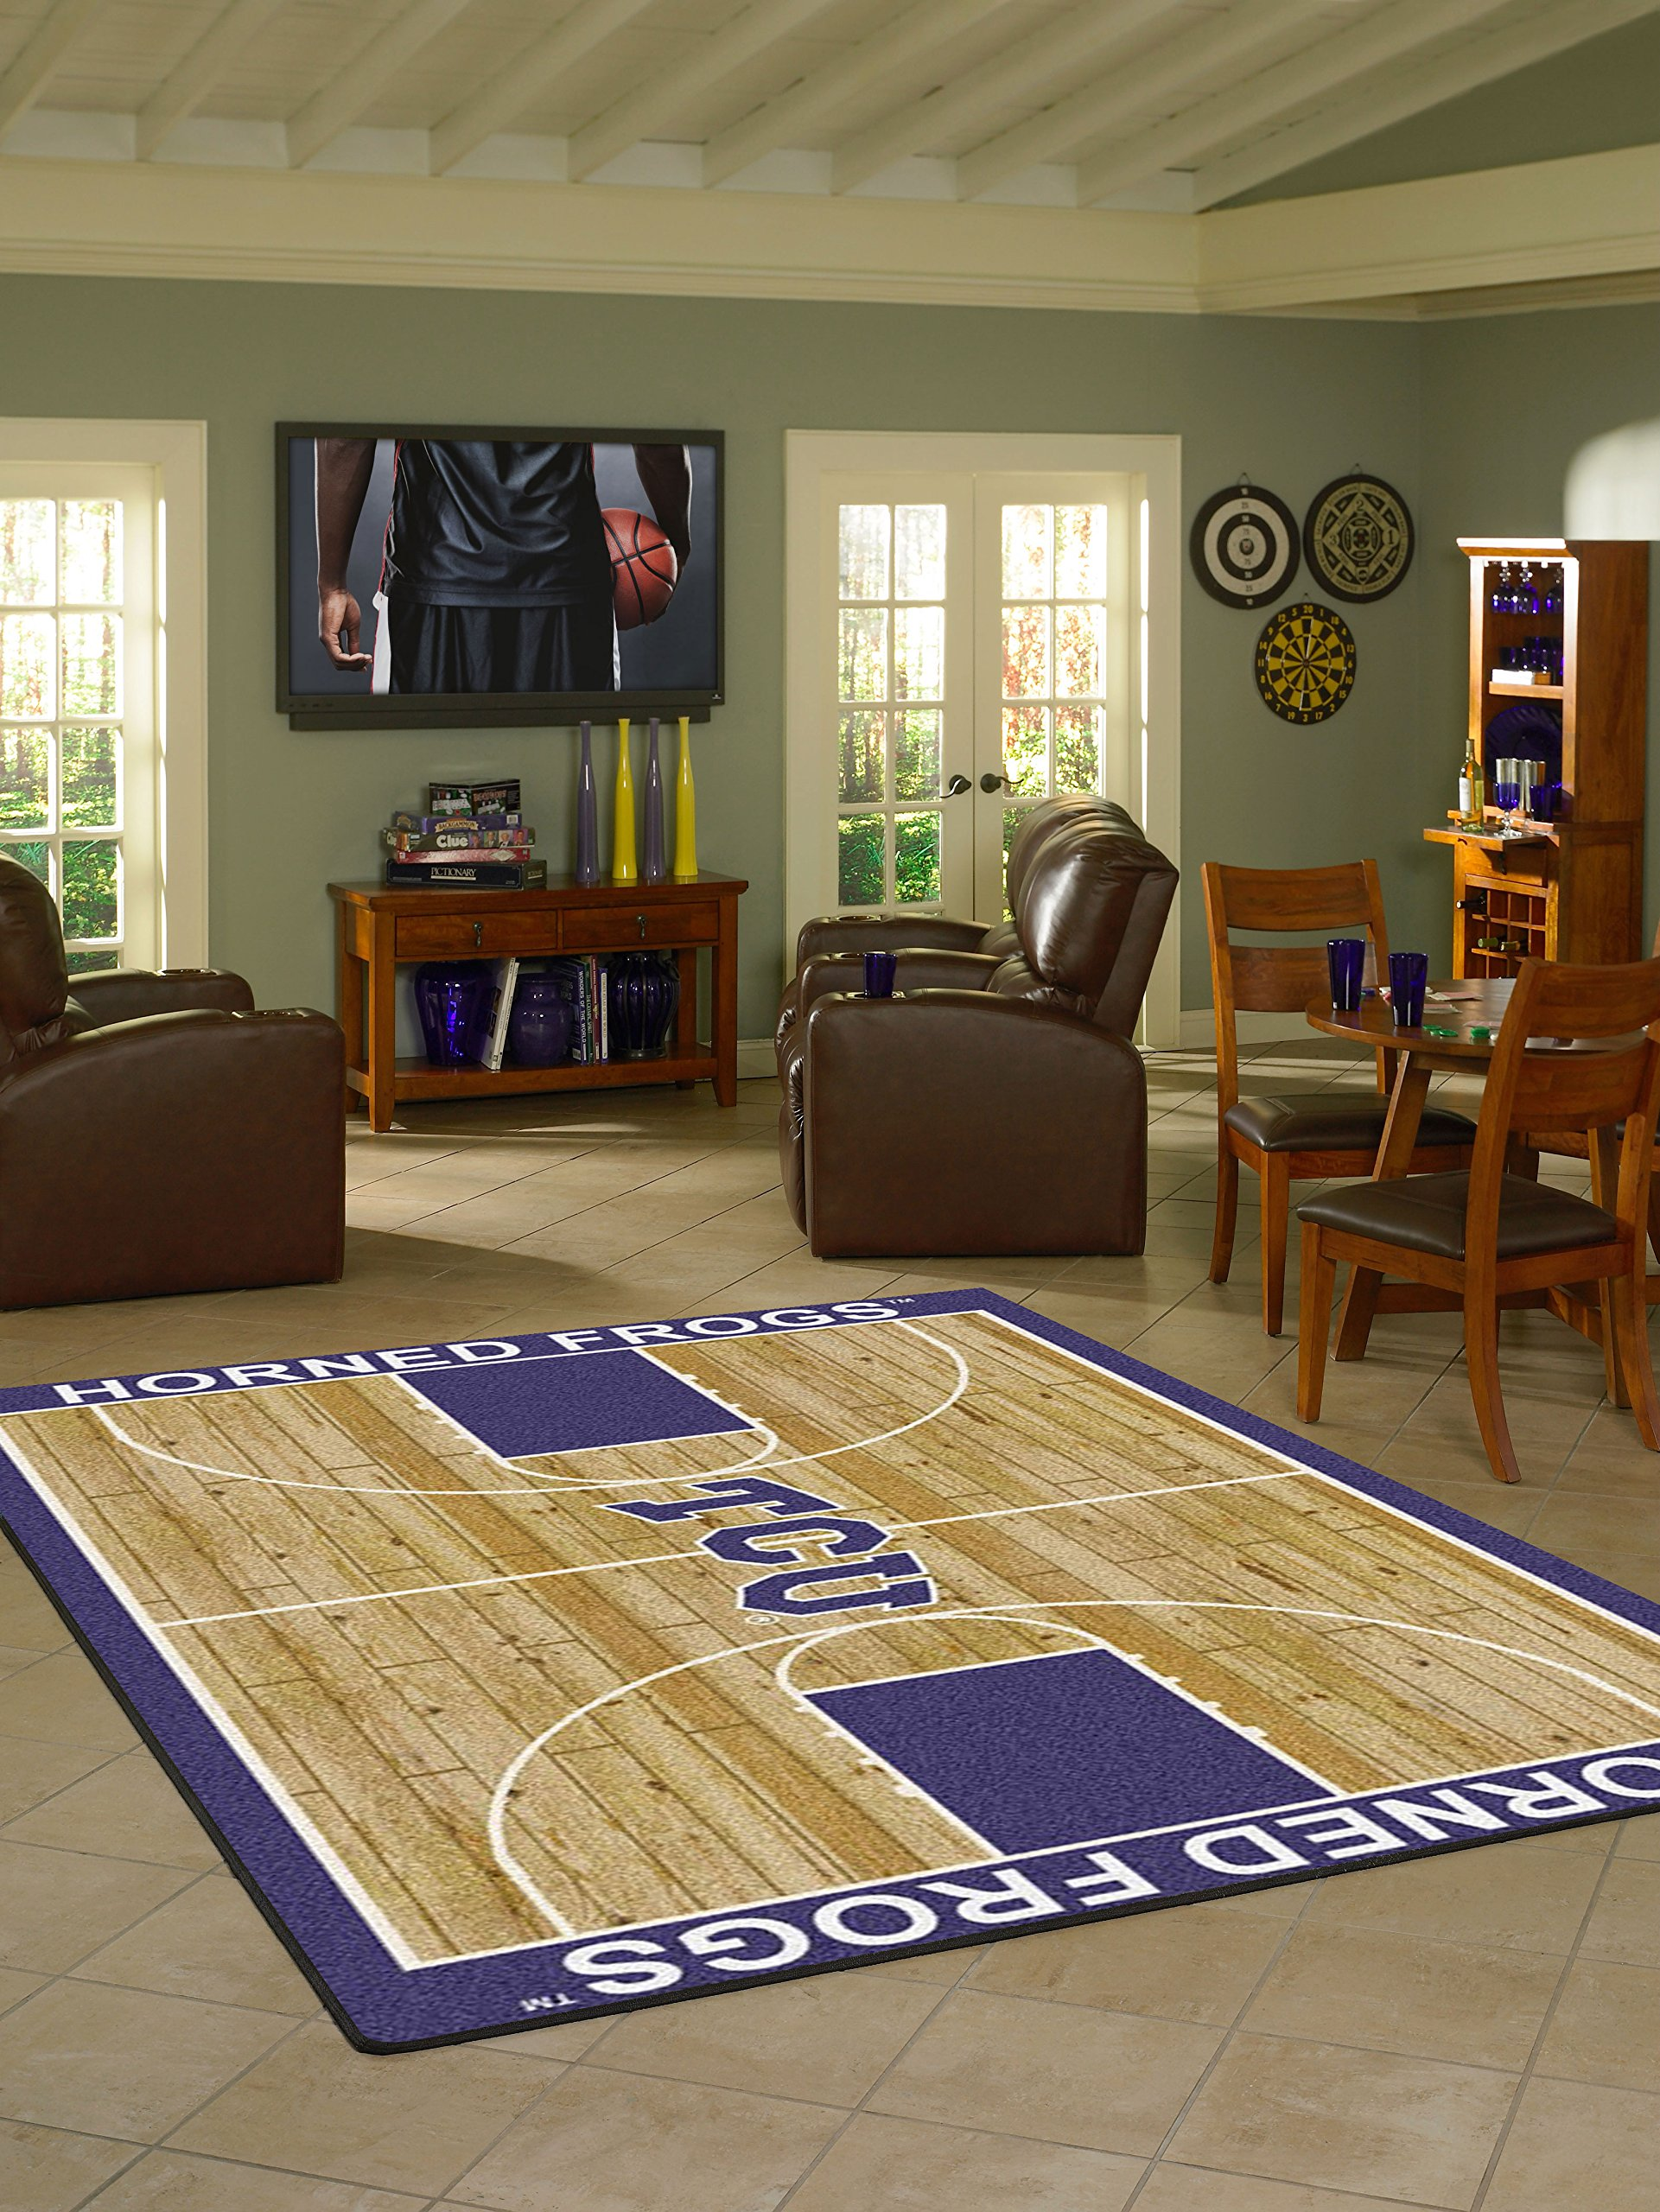 Milliken College Basketball Court Texas Christian 3'10'' x 5'4'' Rectangle Rug by SportsRugs4u